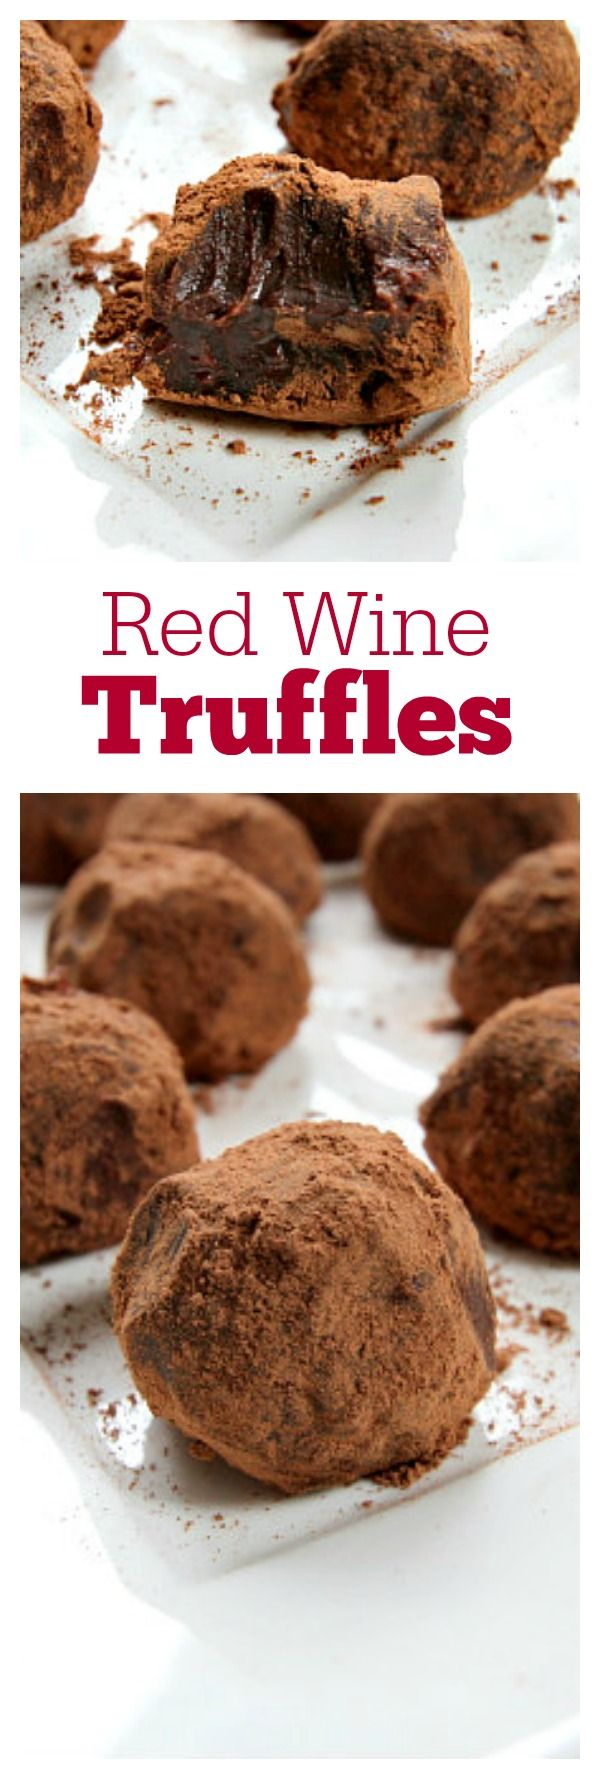 Red Wine Truffles Recipe: I made mine with Pinot Noir!